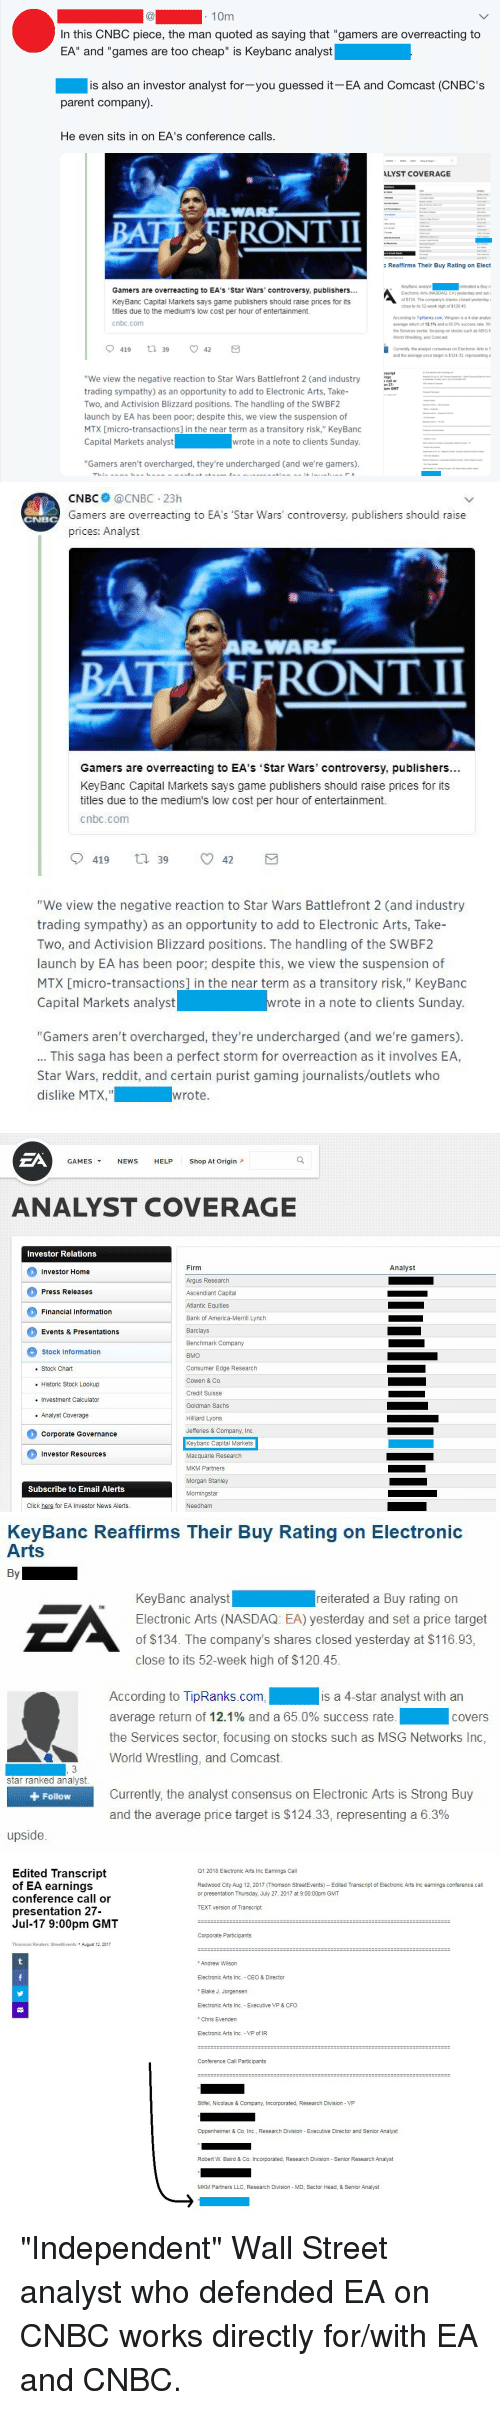 """America, Click, and Head: 10m  In this CNBC piece, the man quoted as saying that """"gamers are overreacting to  EA"""" and """"games are too cheap"""" is Keybanc analyst  is also an investor analyst for-you guessed it EA and Comcast (CNBC's  parent company)  He even sits in on EA's conference calls.  LYST COVERAGE  c Reaffirms Their Buy Rating on Elect  KeyBanc analyst  Electronic Arts (NASDAQ. EA) yesterday and set  of $134. The company's shares closed yesterday  close to its 52-week high of $12045  eiterated a Buy r  Gamers are overreacting to EA's 'Star Wars' controversy, publishers...  KeyBanc Capital Markets says game publishers should raise prices for its  titles due to the medium's low cost per hour of entertainment.  cnbc.com  According to TipRanks.com, Wingren is a 4-star analys  average return of 12.1% and 65 0% success rate Wi  the Services sector, focusing on stocks such as MSG  World Wrestling, and Comcast.  Currently the analyst consensus on Electronic Arts is S  and the average price target is $124.33, representing a  script  ings  r call or  n 27  """"We view the negative reaction to Star Wars Battlefront 2 (and industry  trading sympathy) as an opportunity to add to Electronic Arts, Take-  Two, and Activision Blizzard positions. The handling of the SWBF2  launch by EA has been poor, despite this, we view the suspension of  MTX micro-transactions] in the near term as a transitory risk."""" KeyBanc  Capital Markets analyst  pm GMT  wrote in a note to clients Sunday.  """"Gamers aren't overcharged, they're undercharged (and we're gamers)   CNBC @CNBC 23h  Gamers are overreacting to EA's Star Wars' controversy, publishers should raise  prices: Analyst  BAT EFRONT II  Gamers are overreacting to EA's Star Wars' controversy, publishers...  KeyBanc Capital Markets says game publishers should raise prices for its  titles due to the medium's low cost per hour of entertainment.  cnbc.conm  9419 39 ㅇ 42  """"We view the negative reaction to Star Wars Battlefront 2 (and industry  trad"""